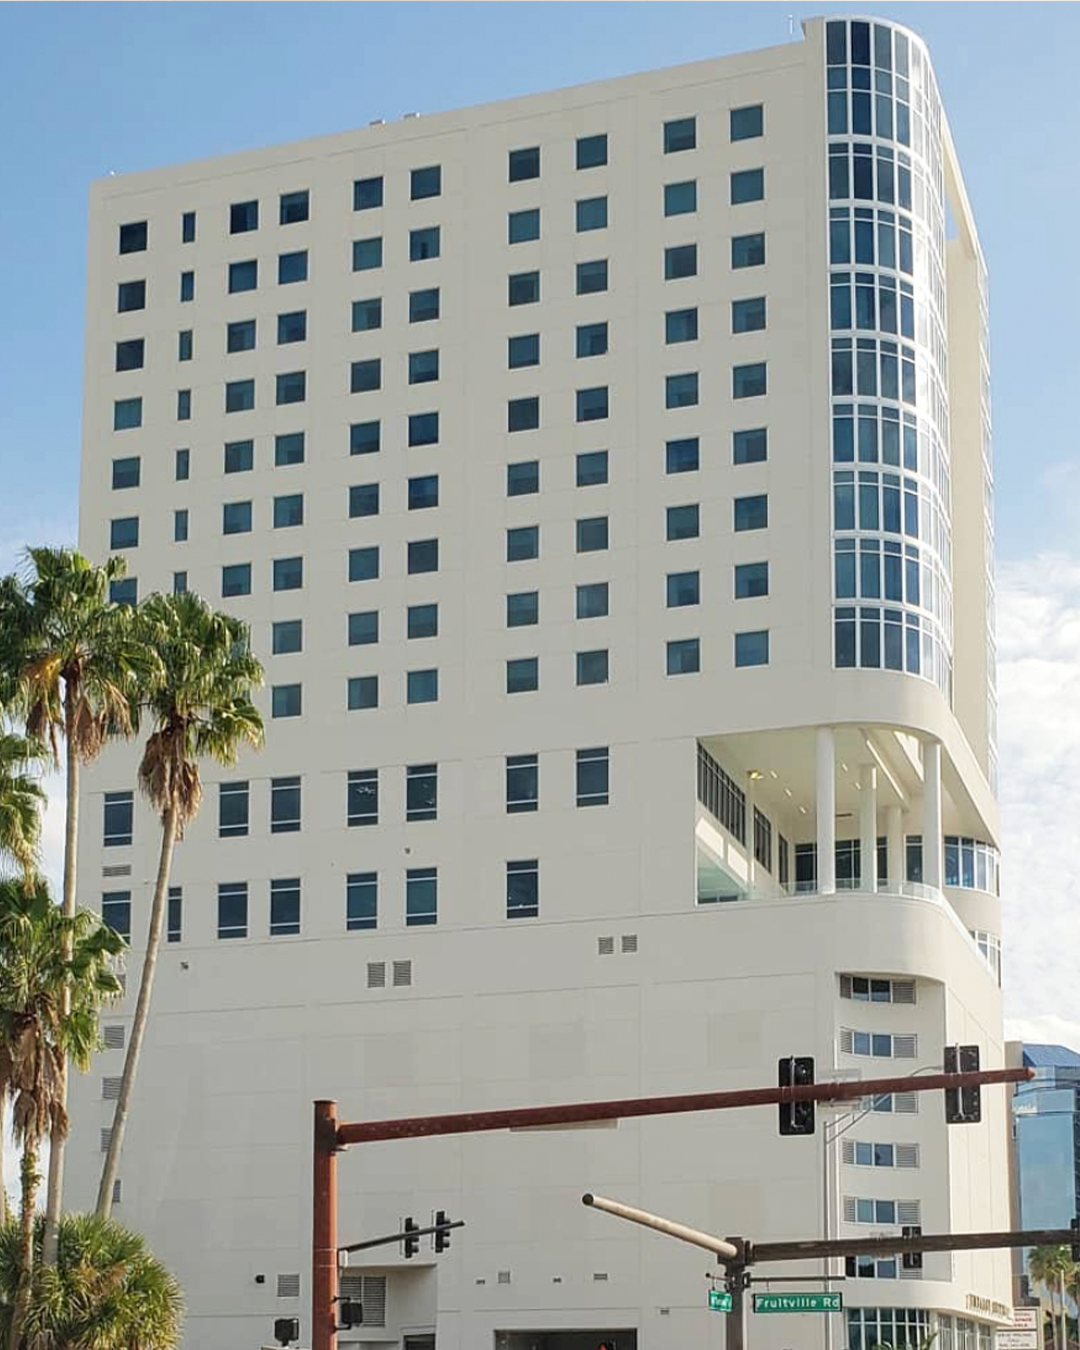 Make A Reservation At Our Newly Opened Embassy Suites In Sarasota Fl Today Hotel Embassy Suites Sarasota